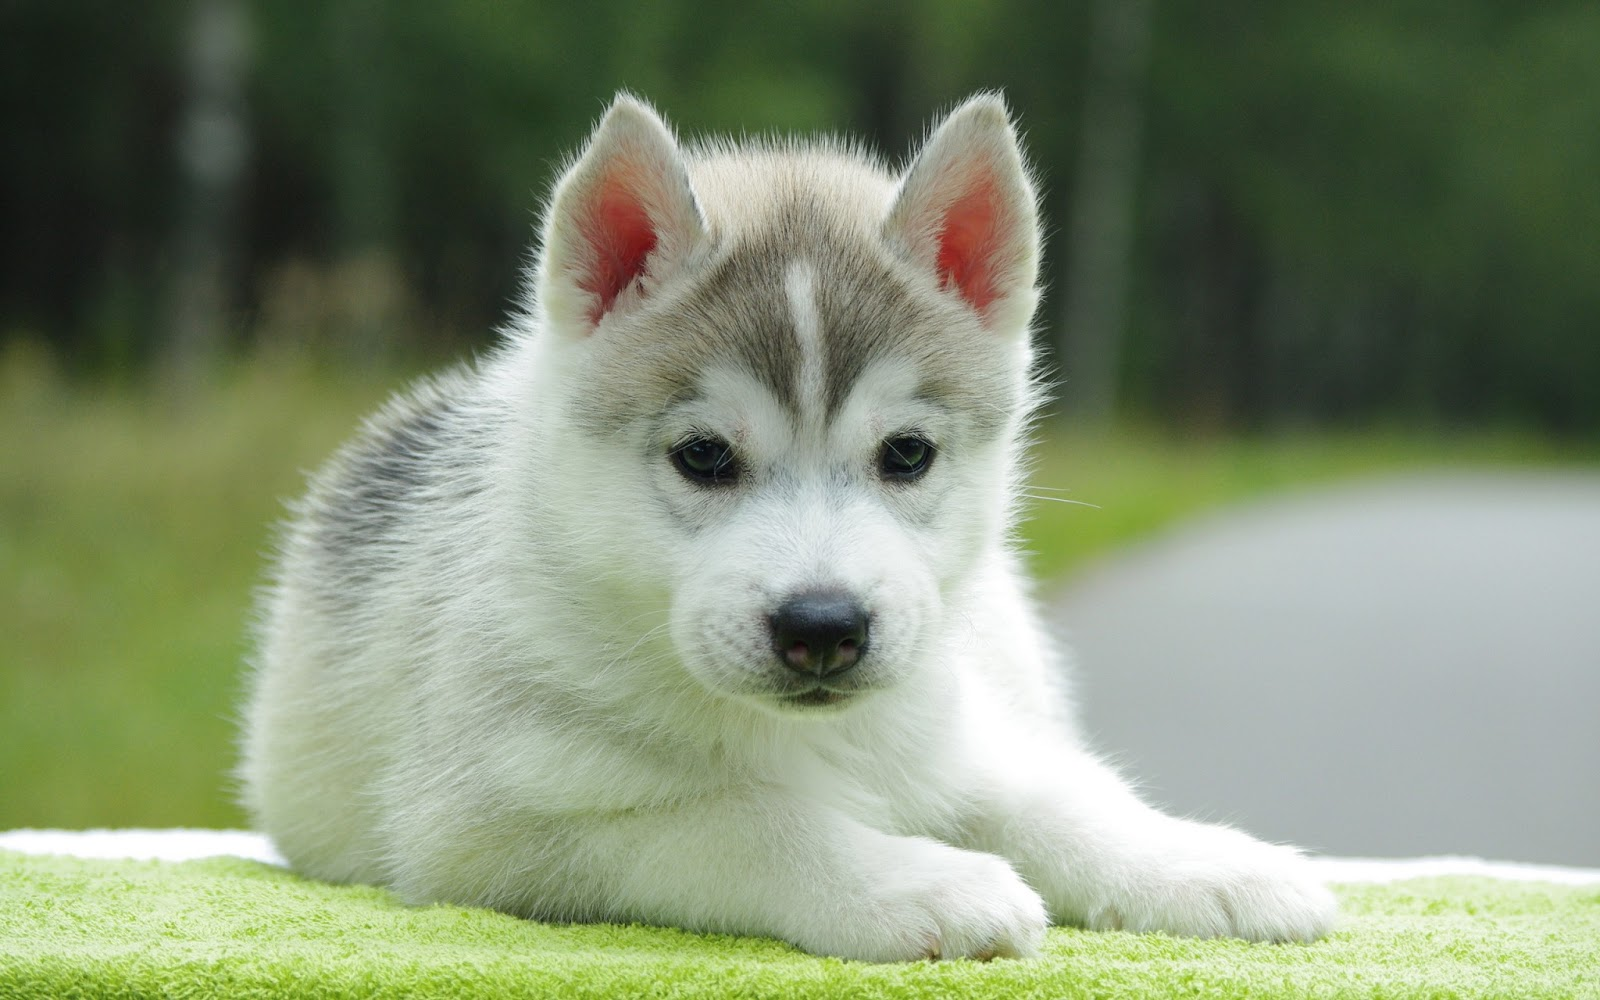 Cute Husky Dogs Puppies wallpapers